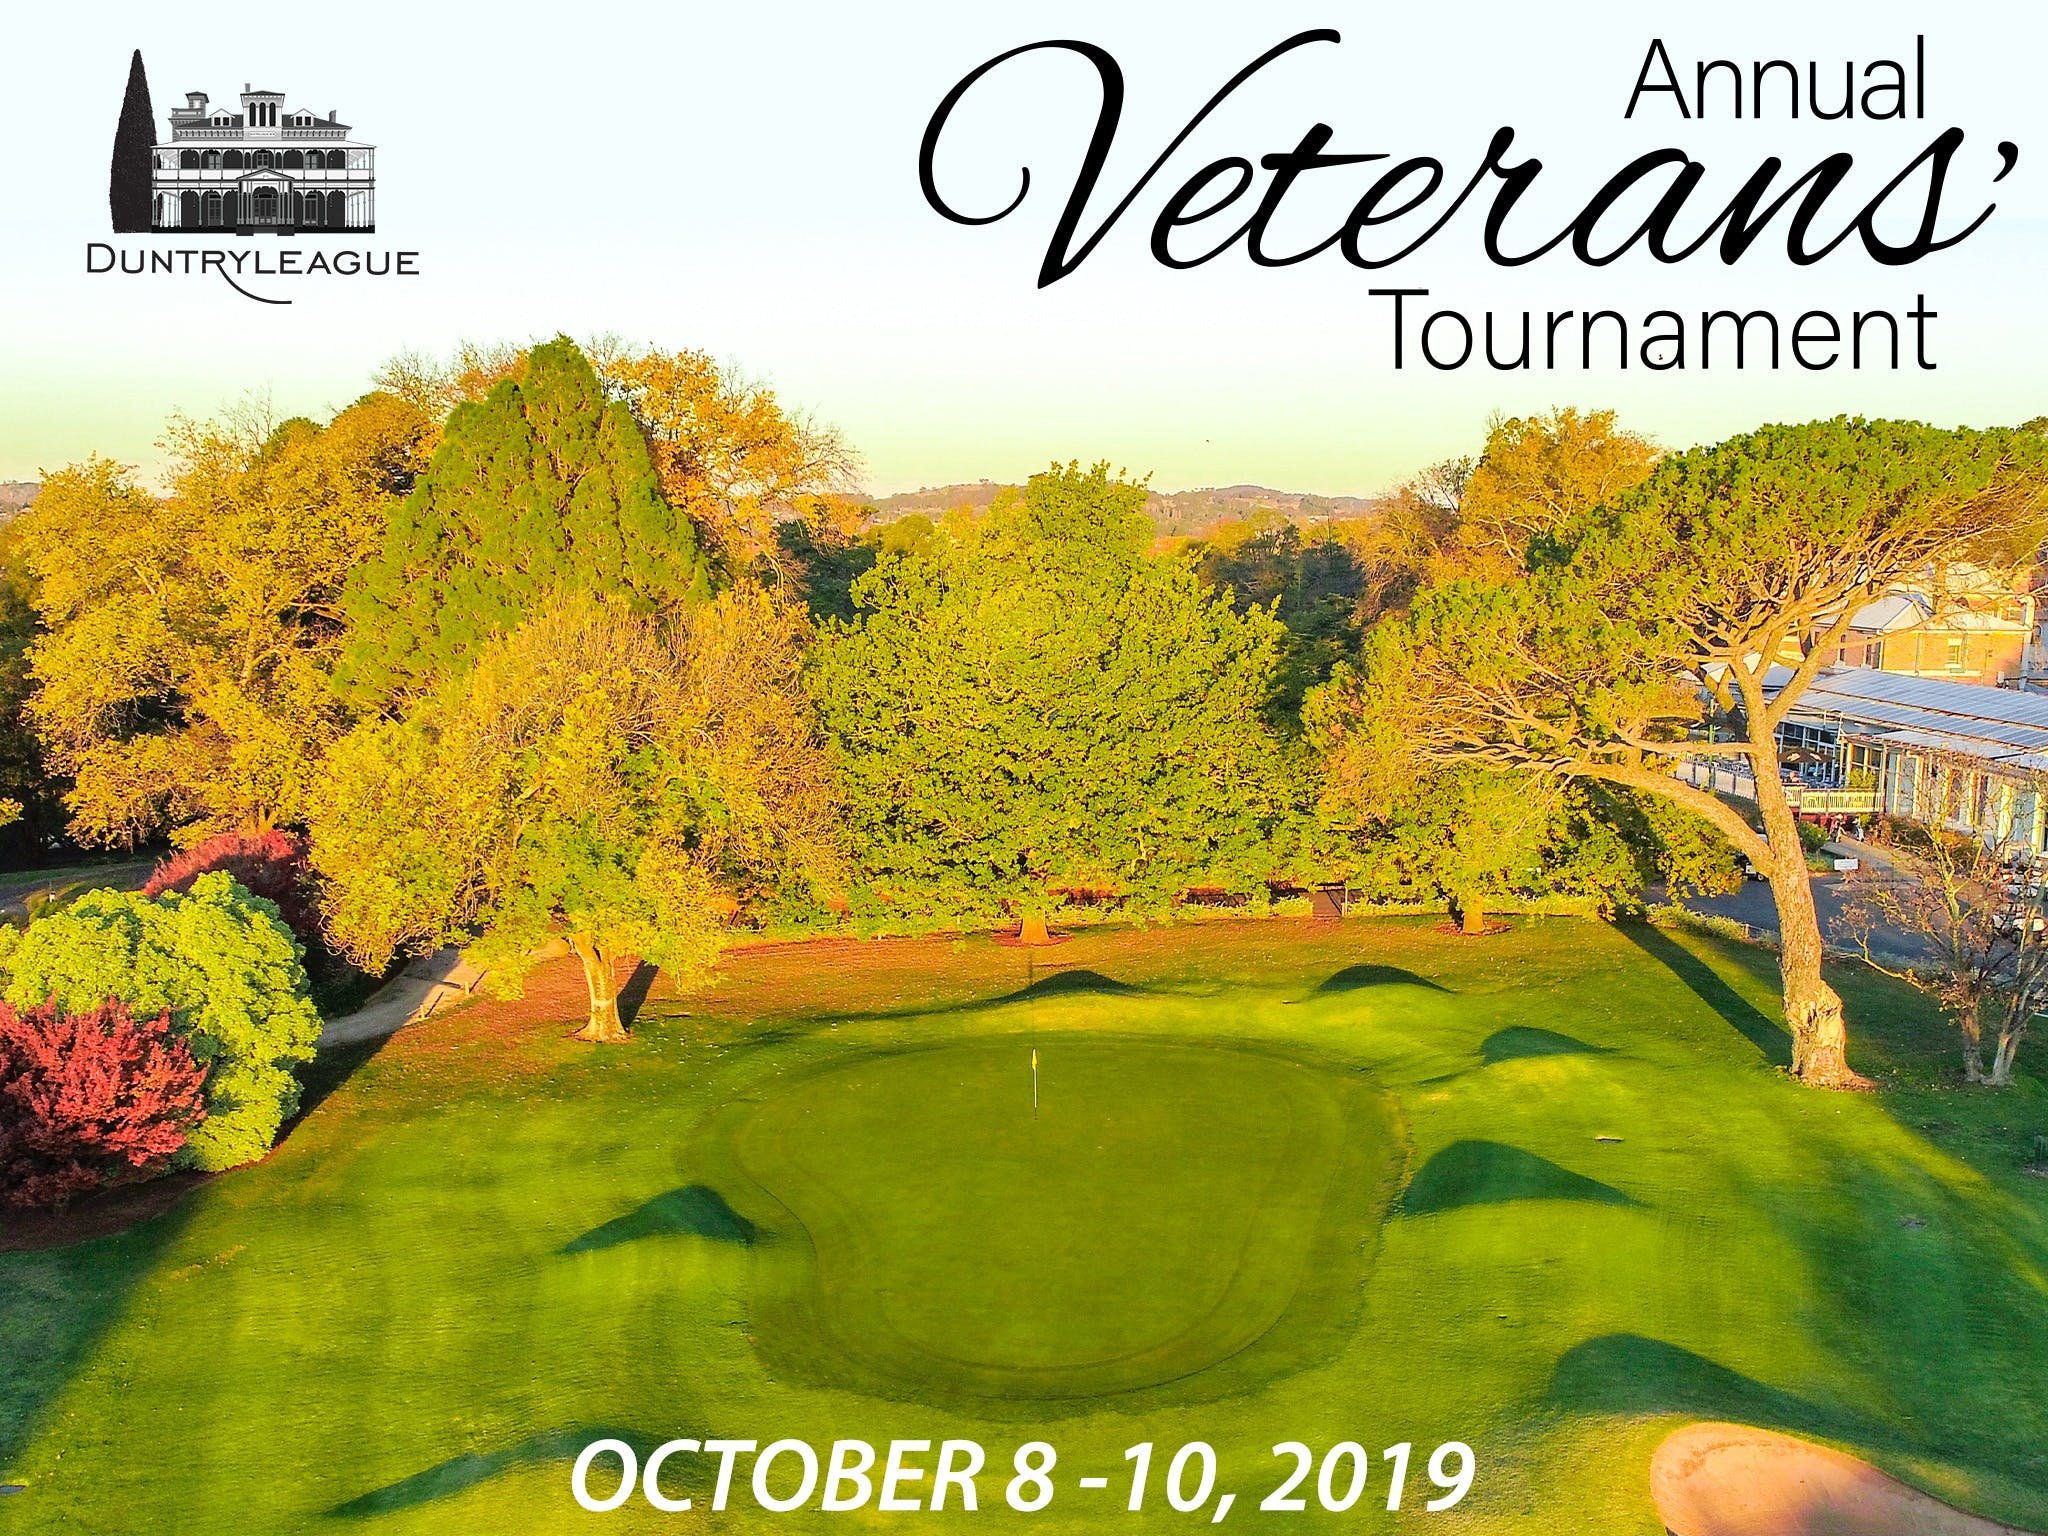 Duntryleague Annual Veterans Tournament - Grafton Accommodation